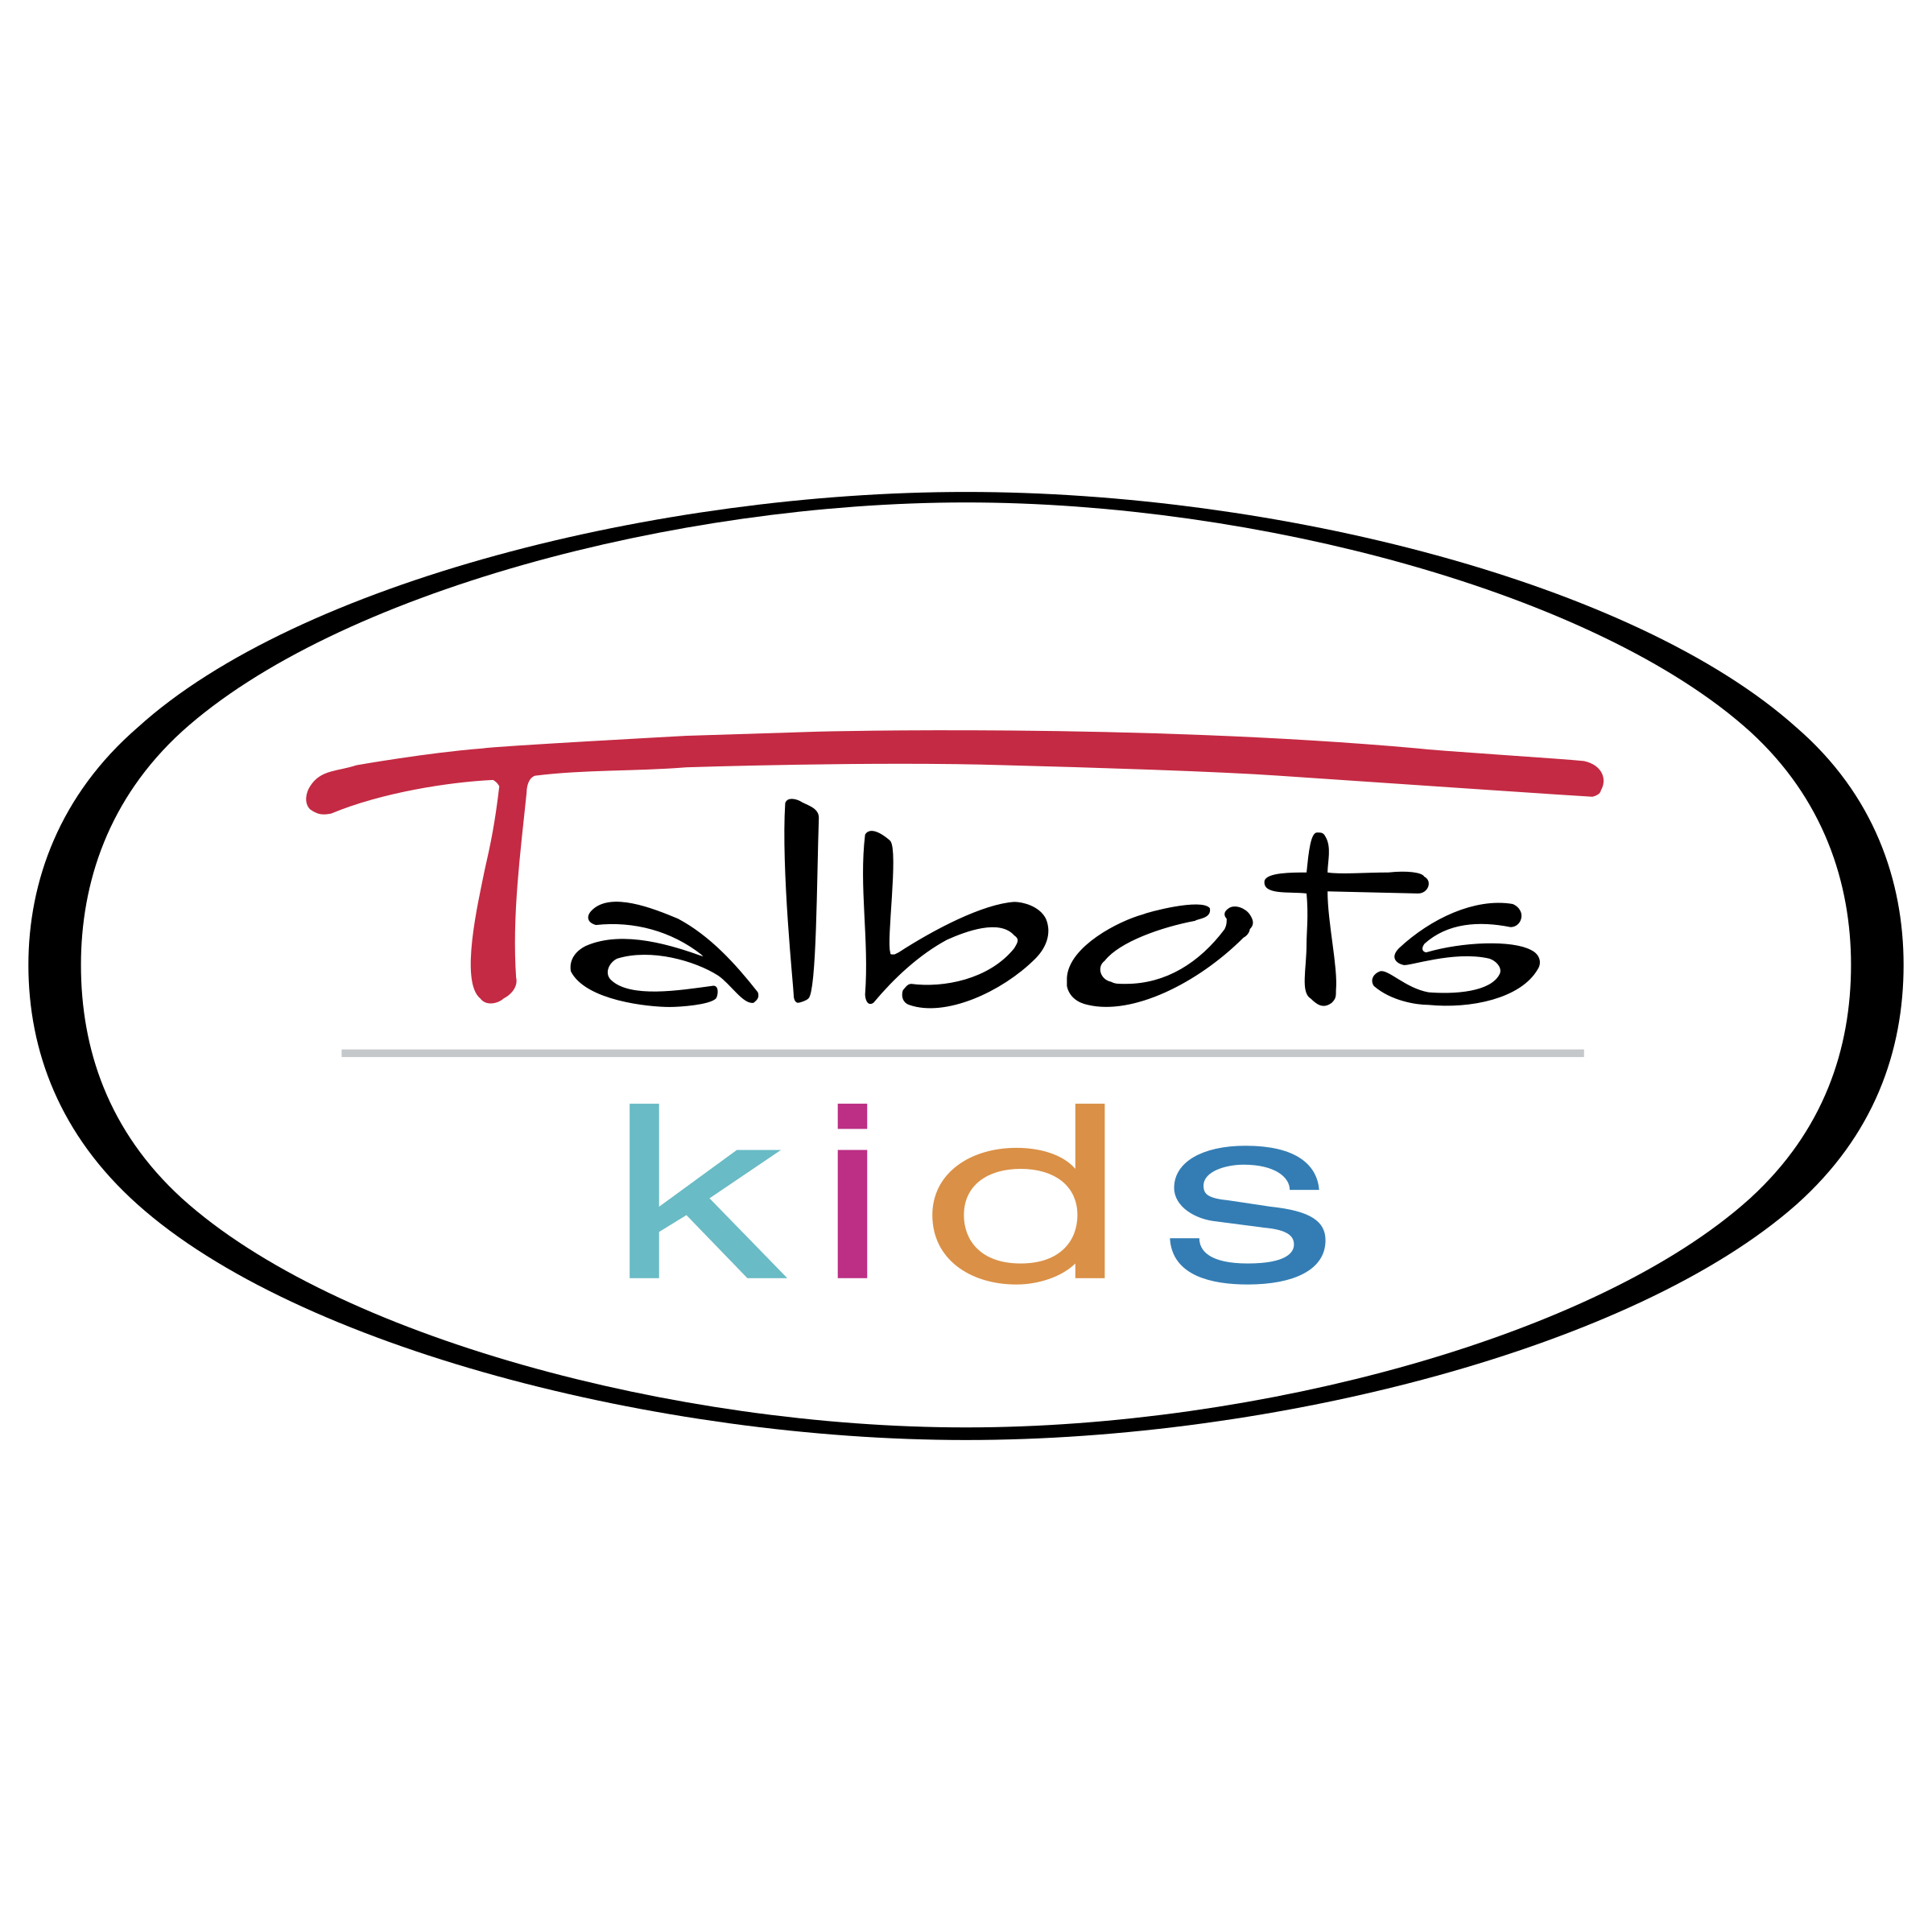 Talbots Kids Logo PNG Transparent & SVG Vector.